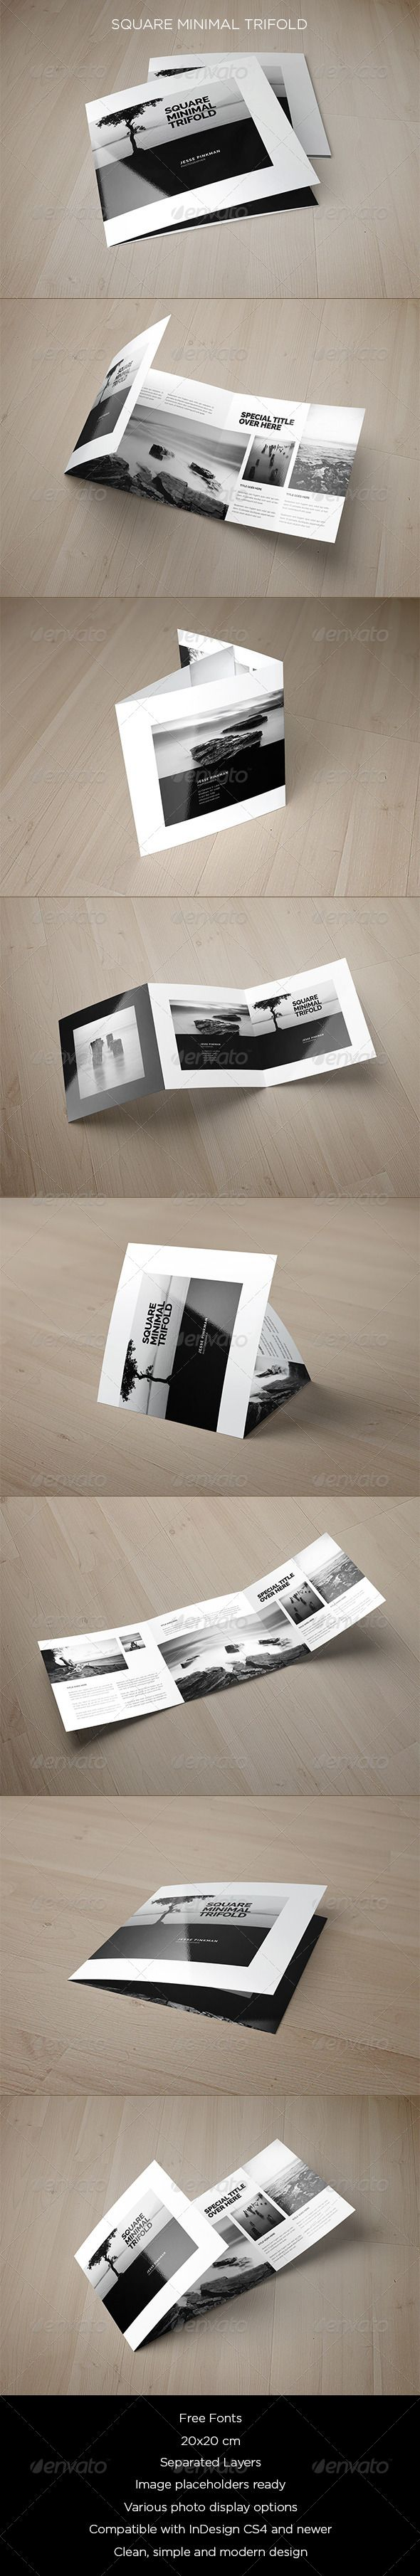 Square Minimal Trifold - Brochures Print Templates